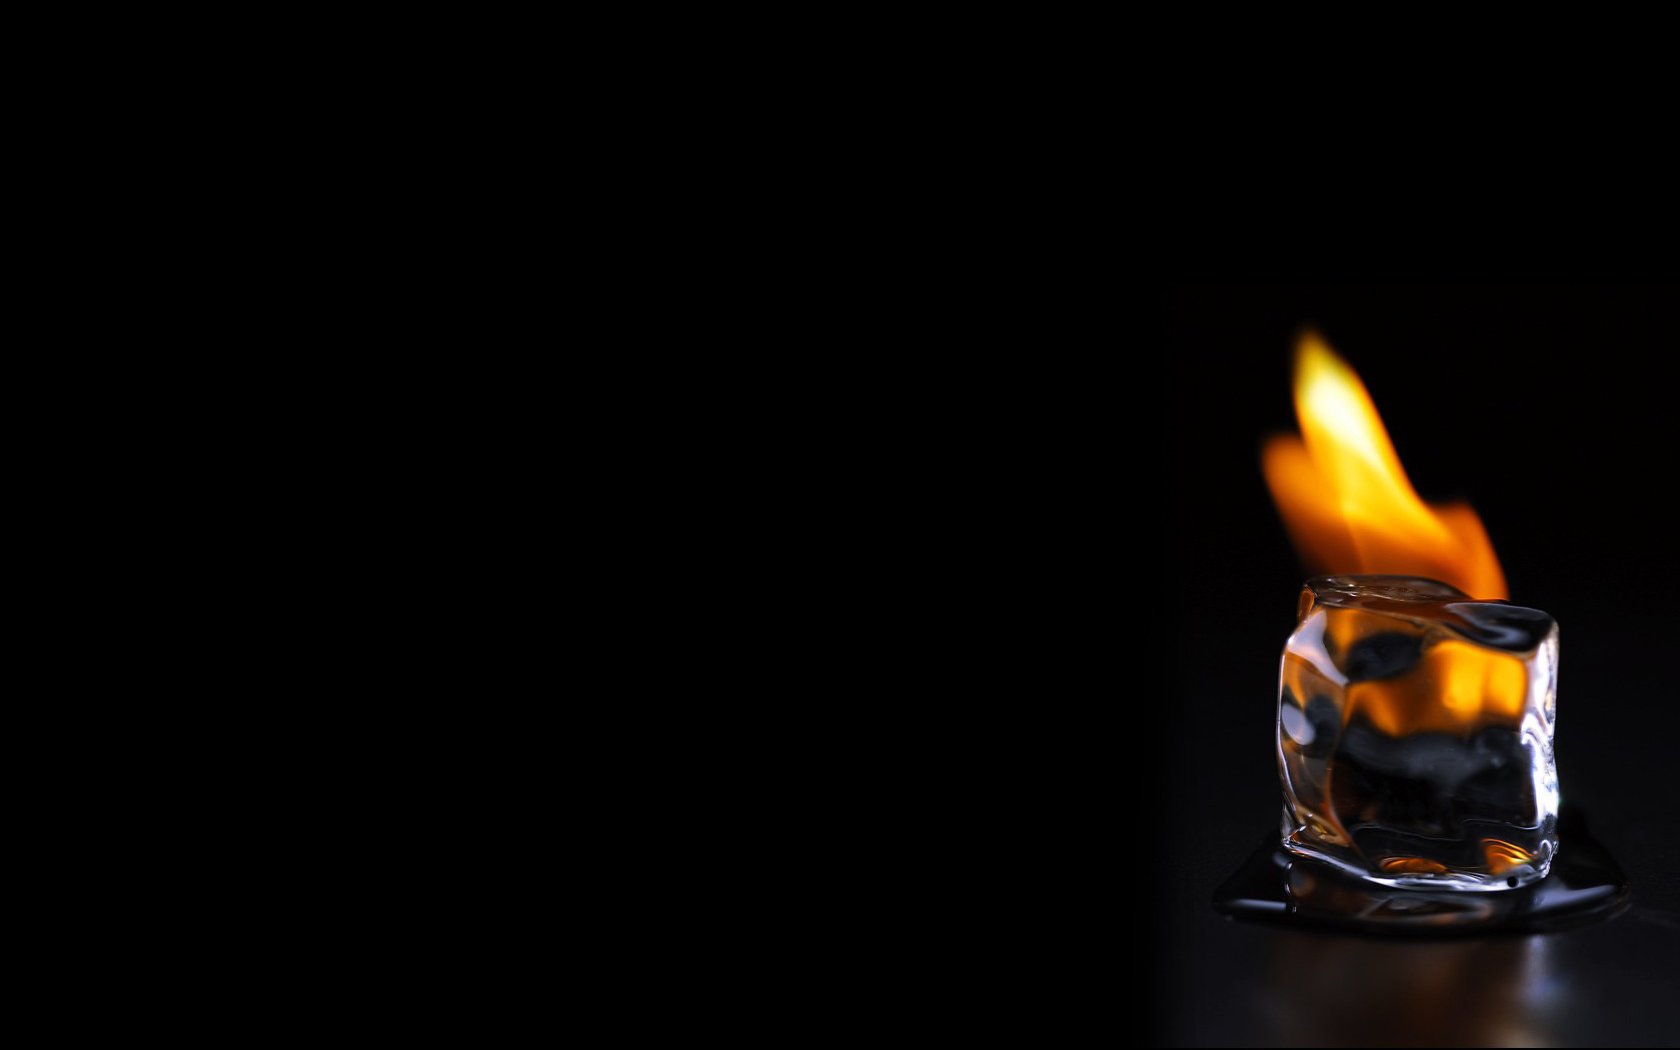 Fire Cool Backgrounds And Wallpapers For Your Desktop Or Laptop 1680x1050